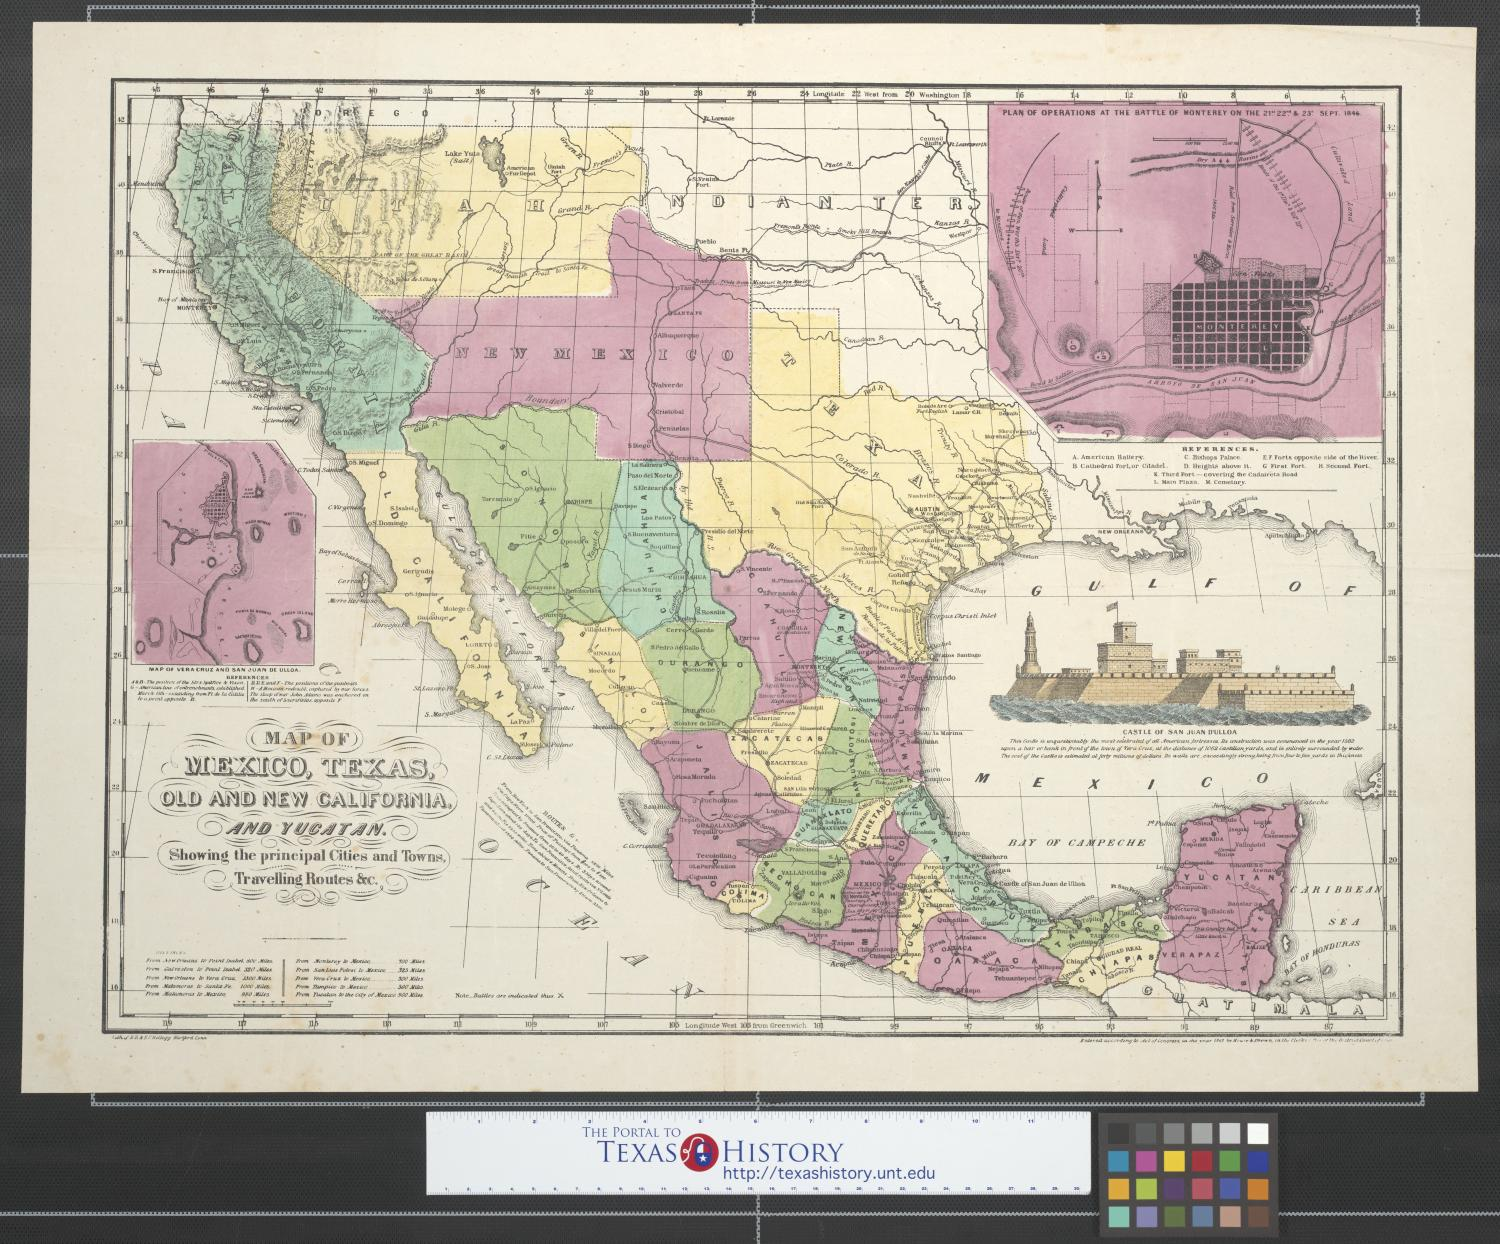 Map Of Mexico Texas Old And New California And Yucatan Showing - Texas towns map